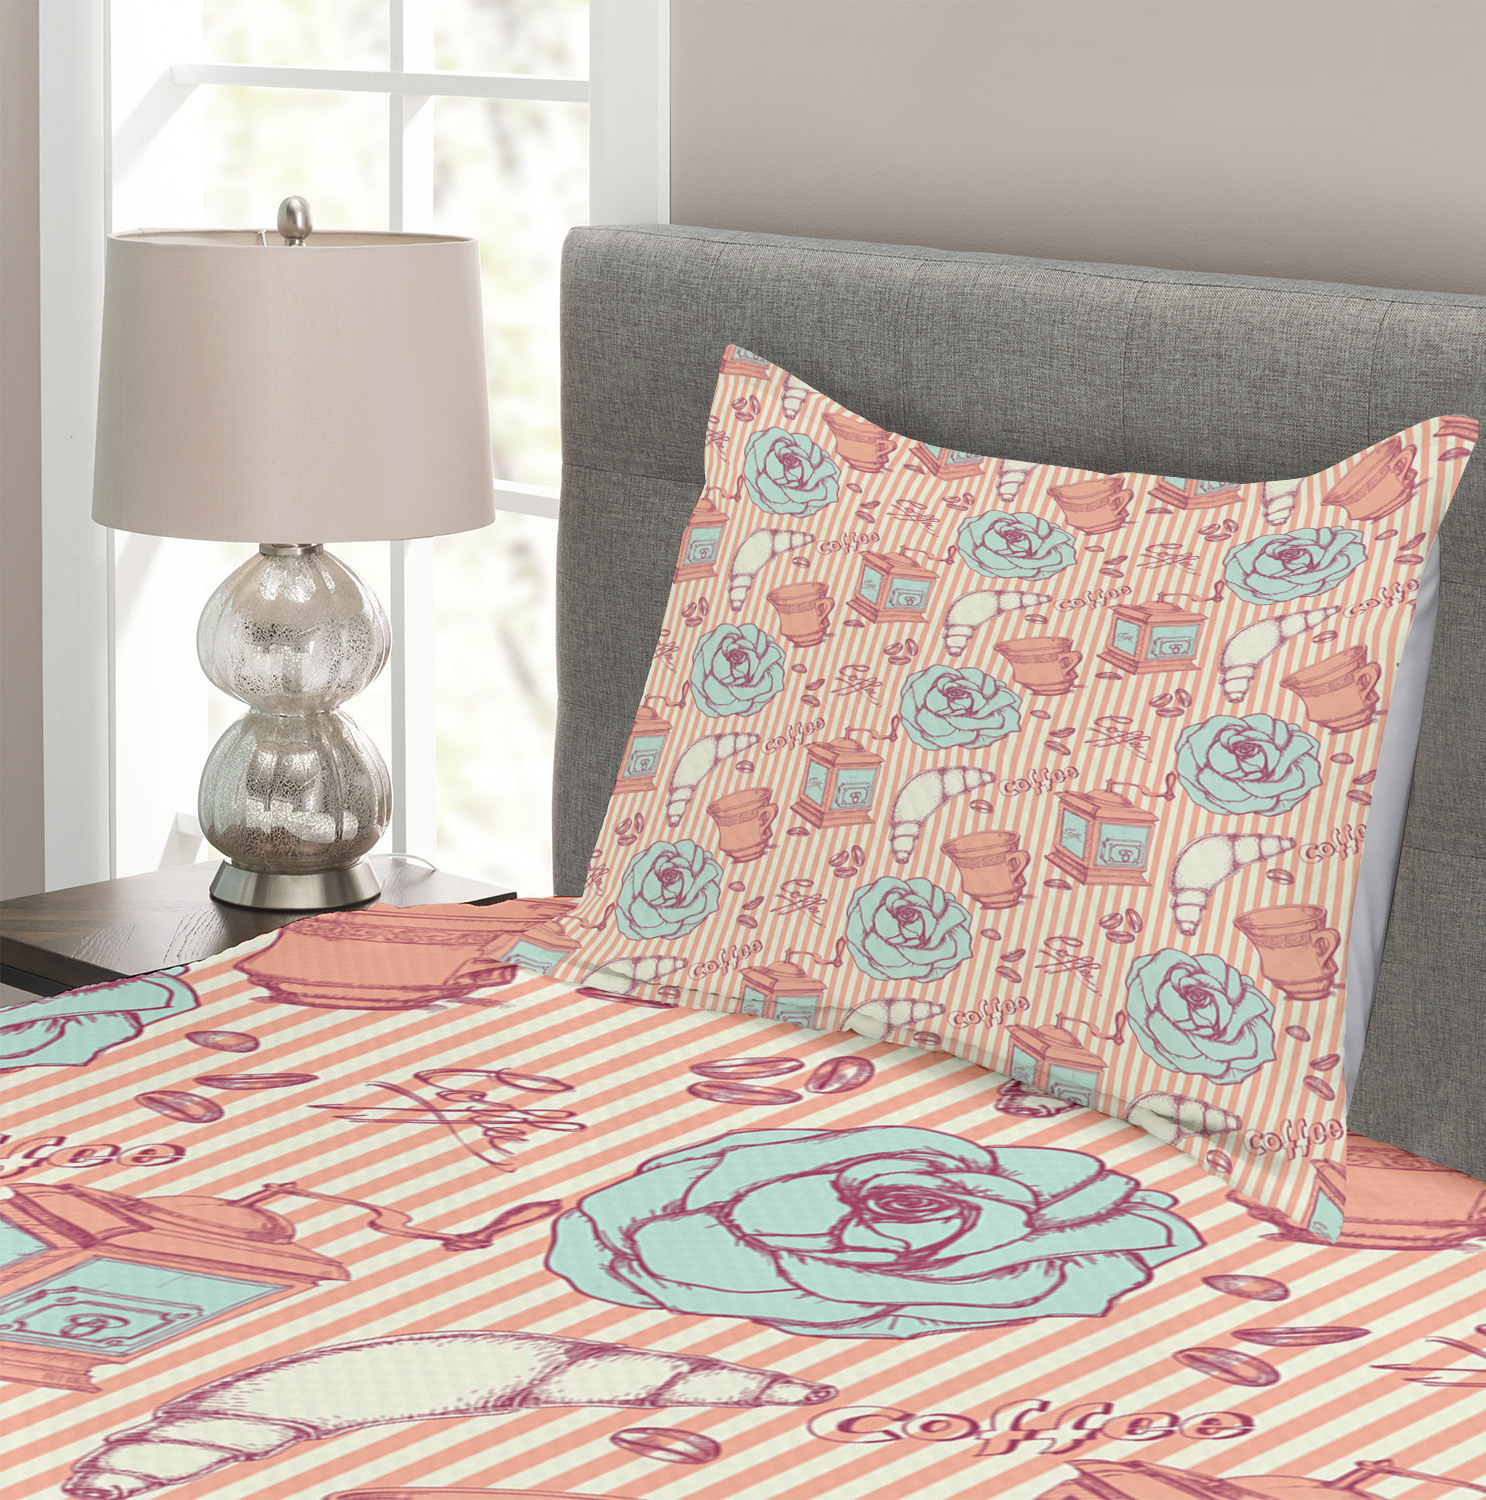 Shabby-Chic-Quilted-Bedspread-amp-Pillow-Shams-Set-Roses-Coffee-House-Print thumbnail 3